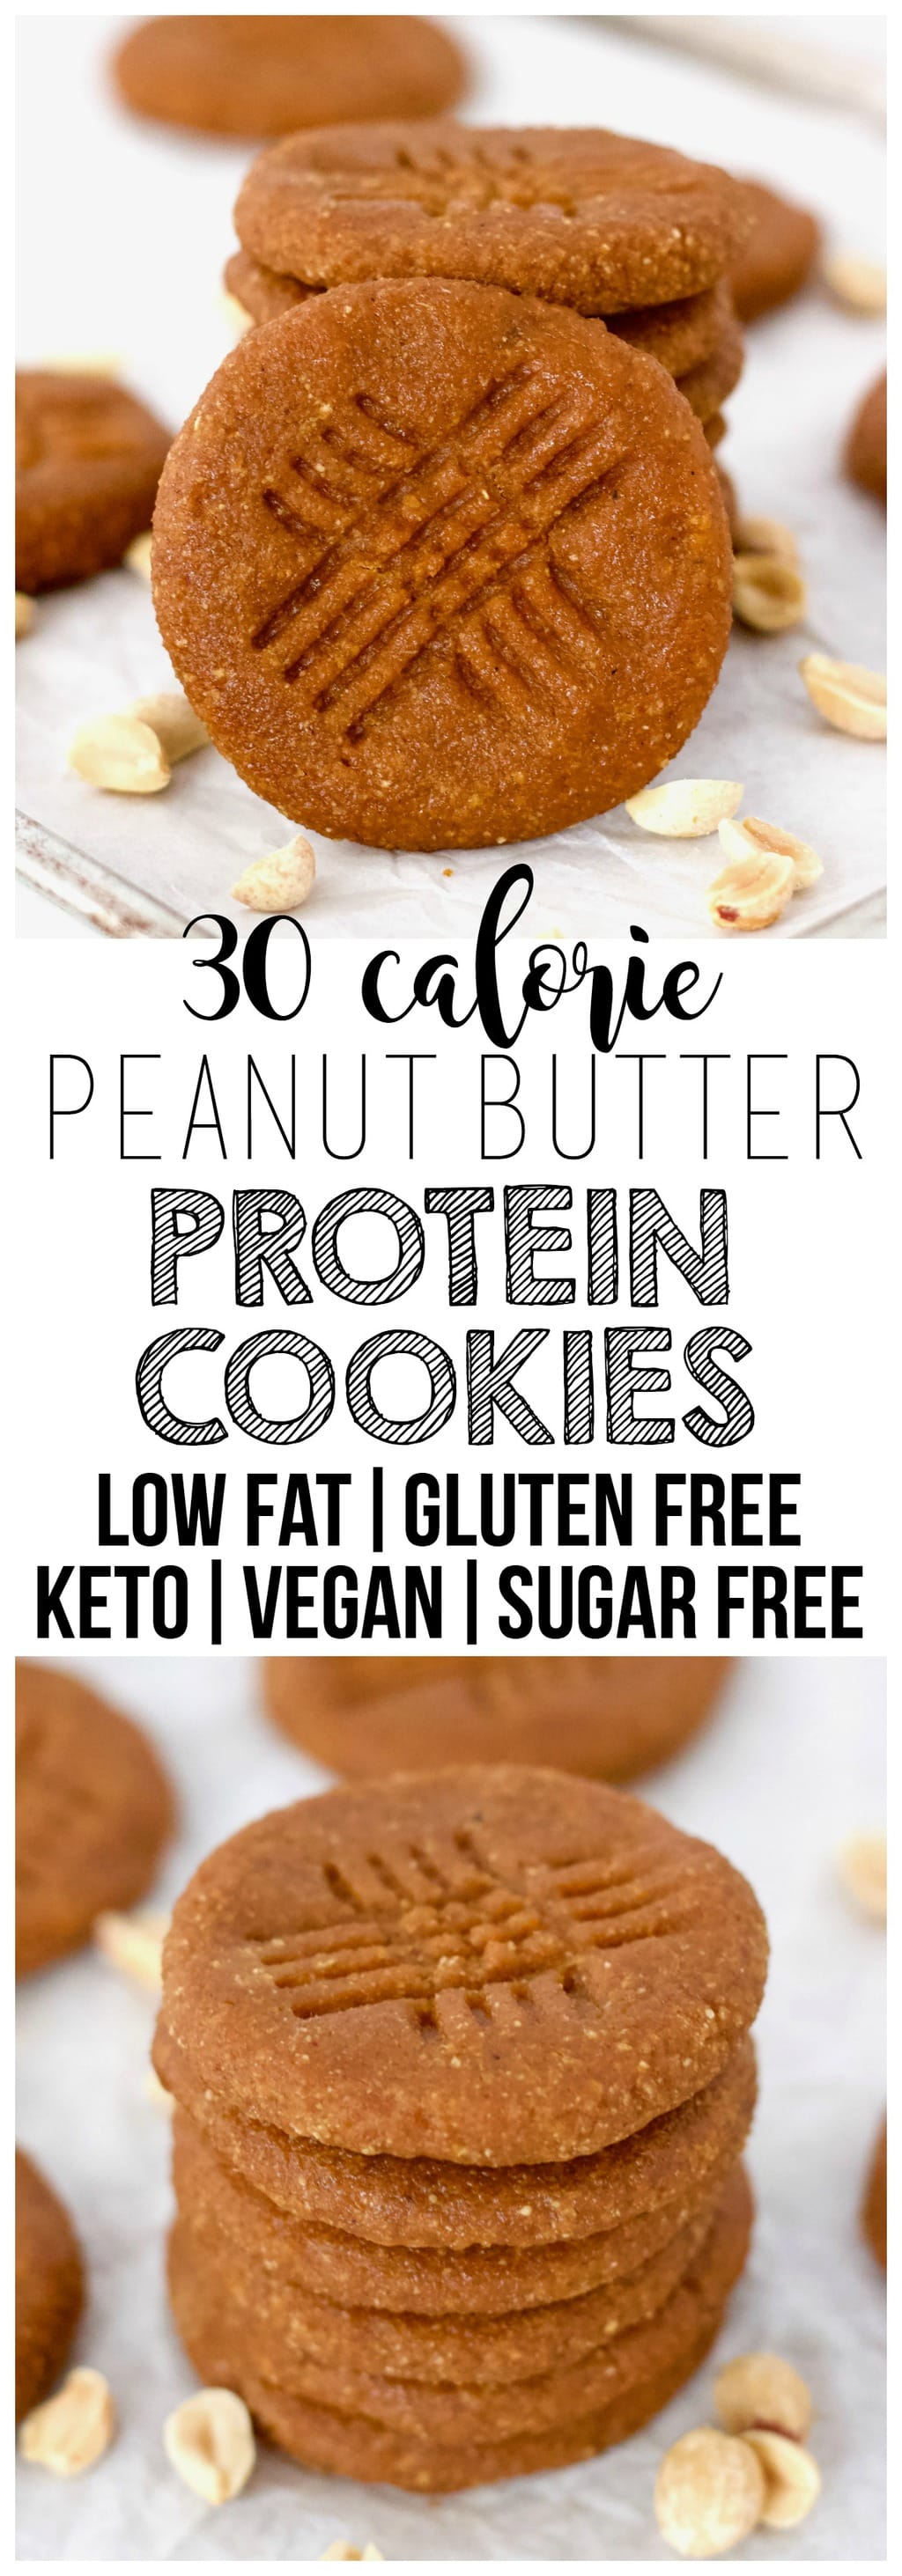 These soft & chewy Keto Vegan Peanut Butter Protein Cookies are the perfect, healthy dessert or snack! They're also  gluten-free, sugar-free, oil-free, low-fat, low-carb & low-calorie - only 30 calories each!